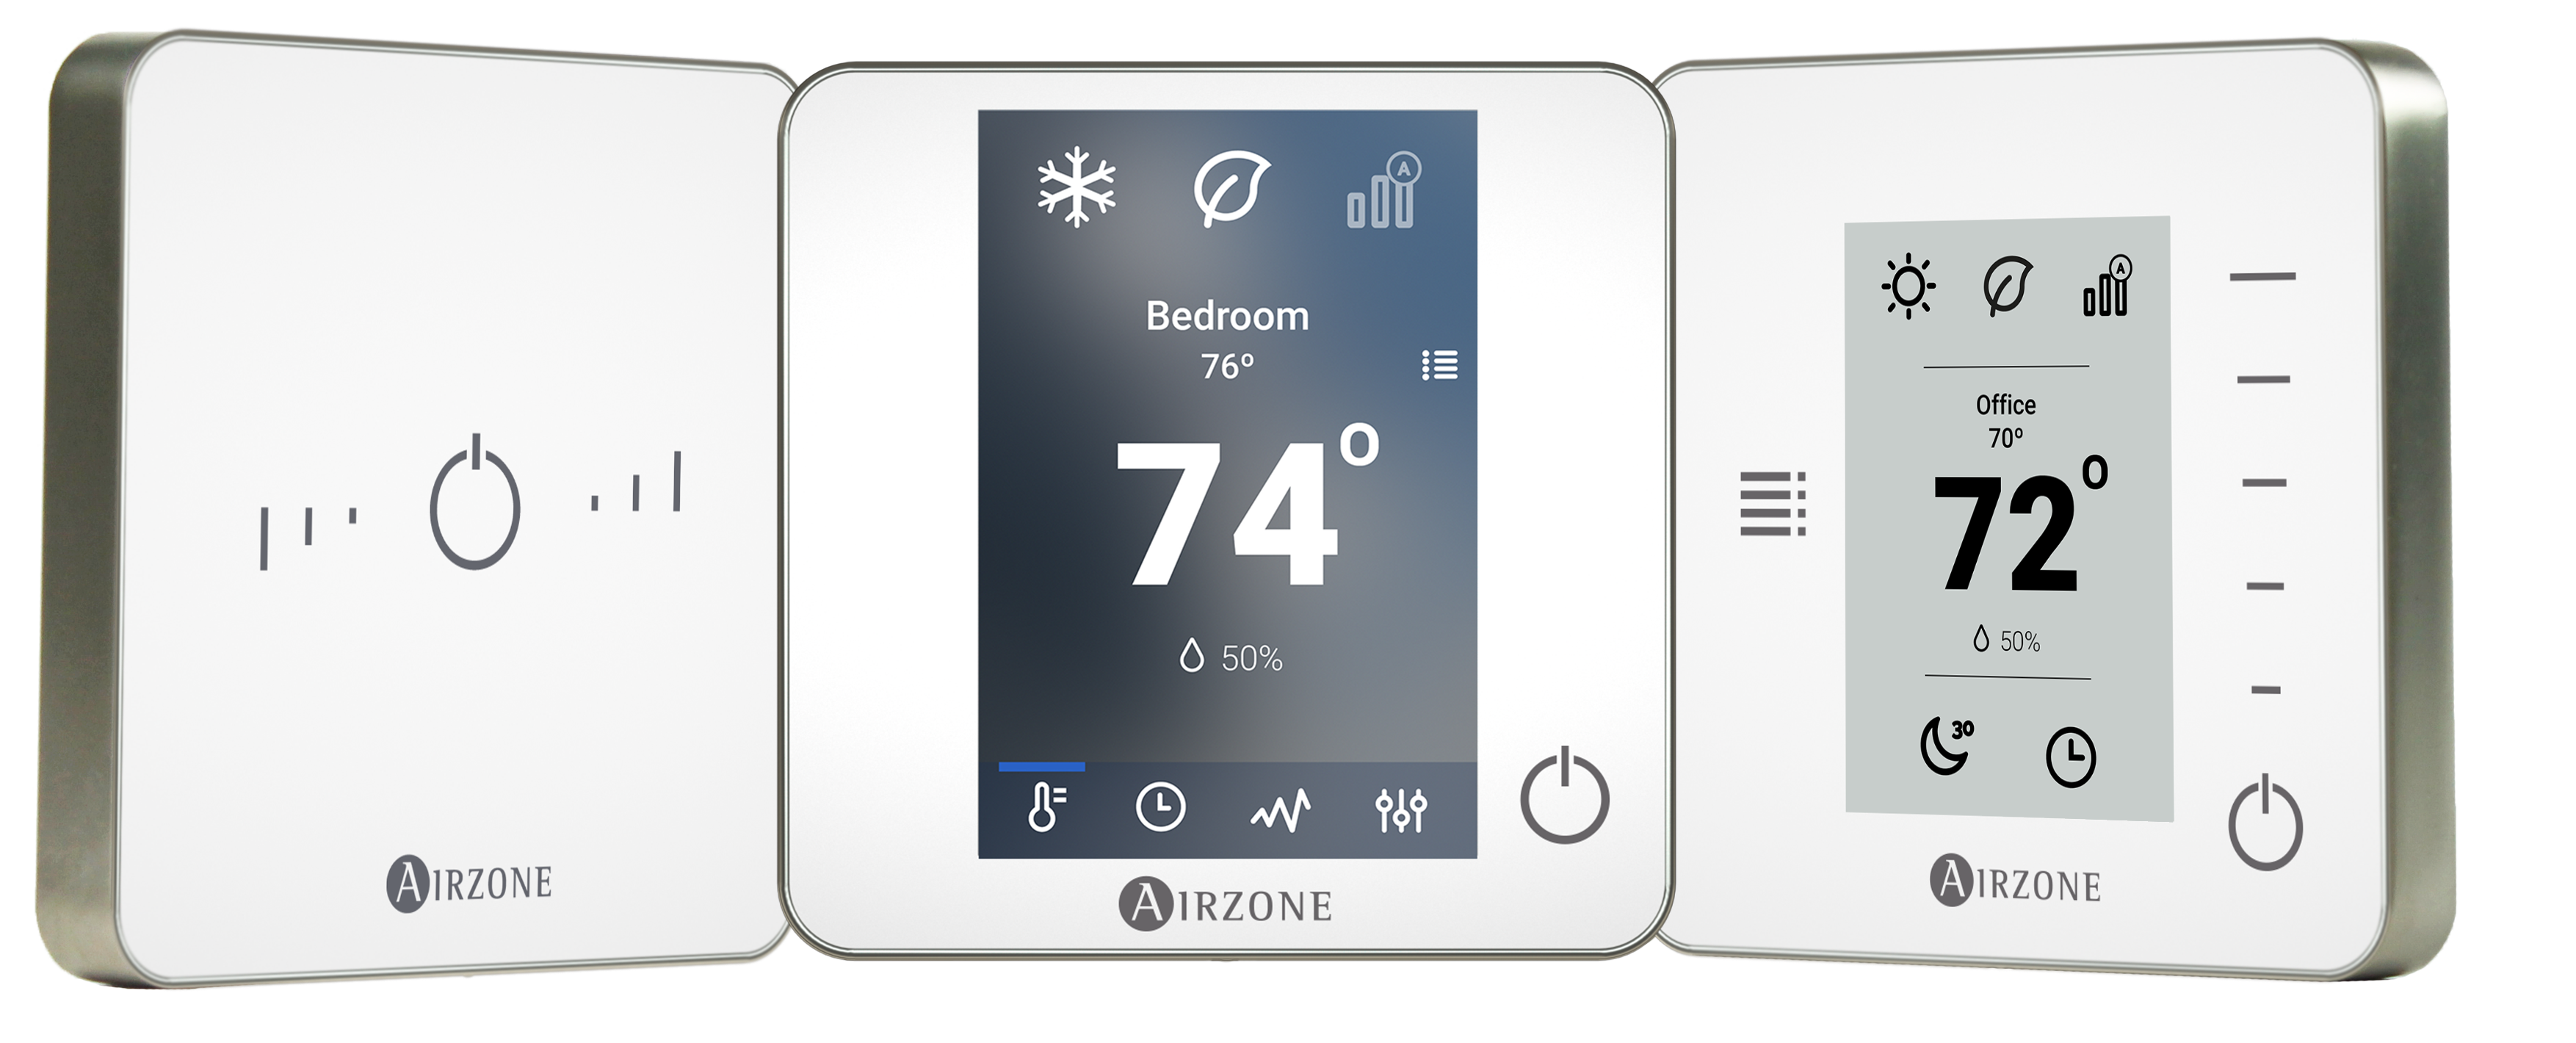 Airzone smart controllers